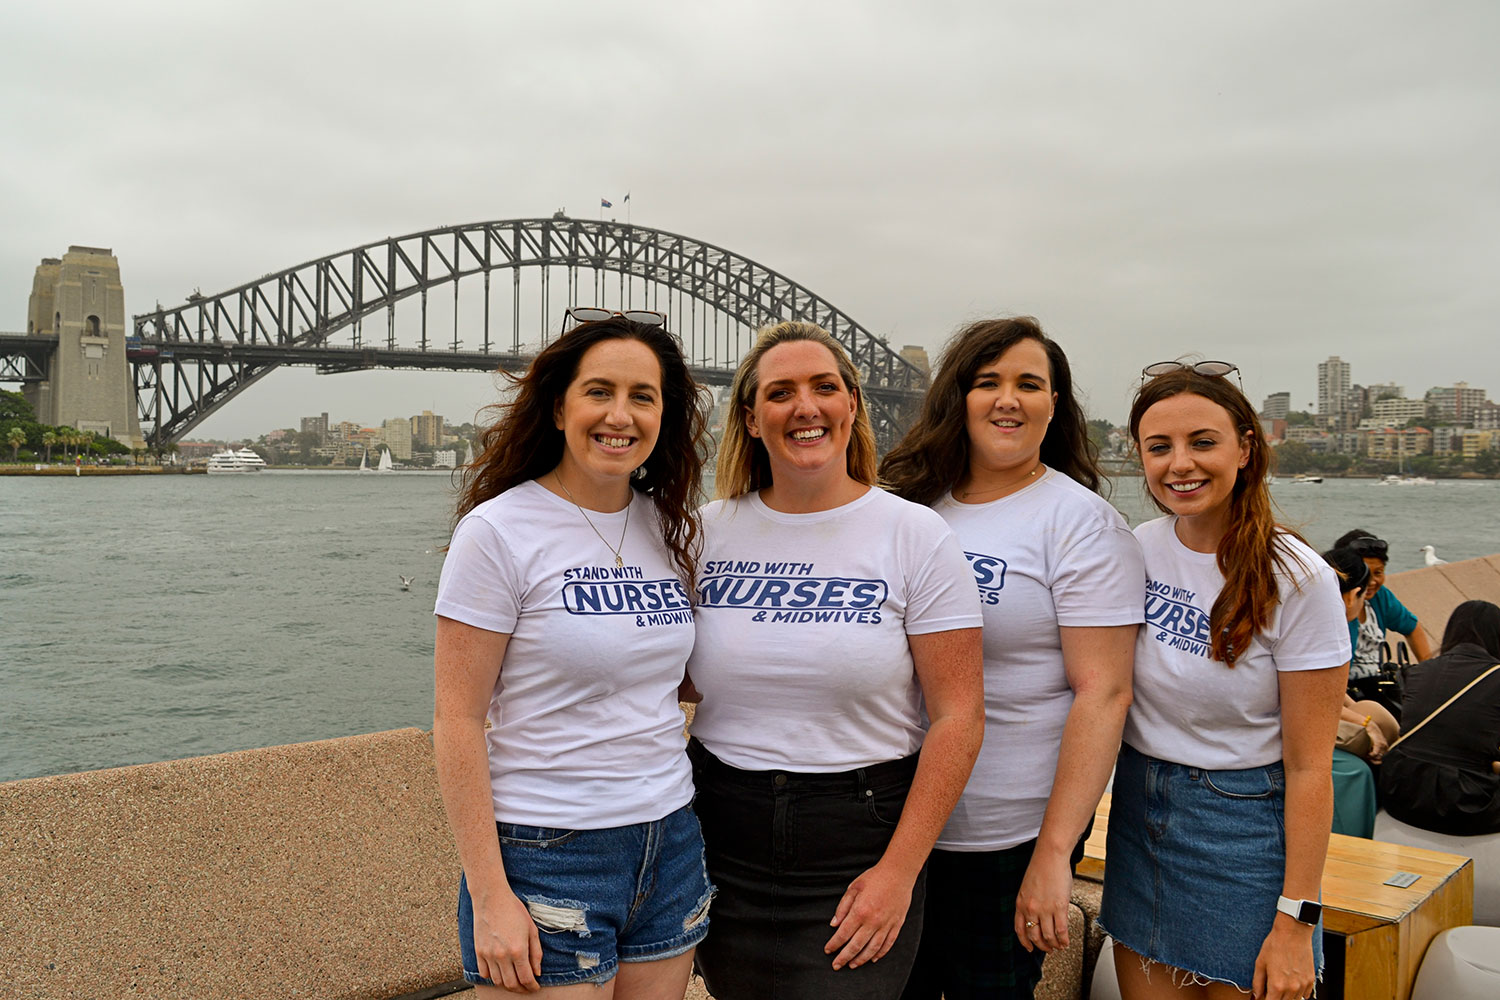 Irish nurses Helen McEnery, Niamh Burns, Laura Phillips and Sorcha Sharkey in Sydney to show their support for their colleagues in Ireland who have taken industrial action for better working conditions.